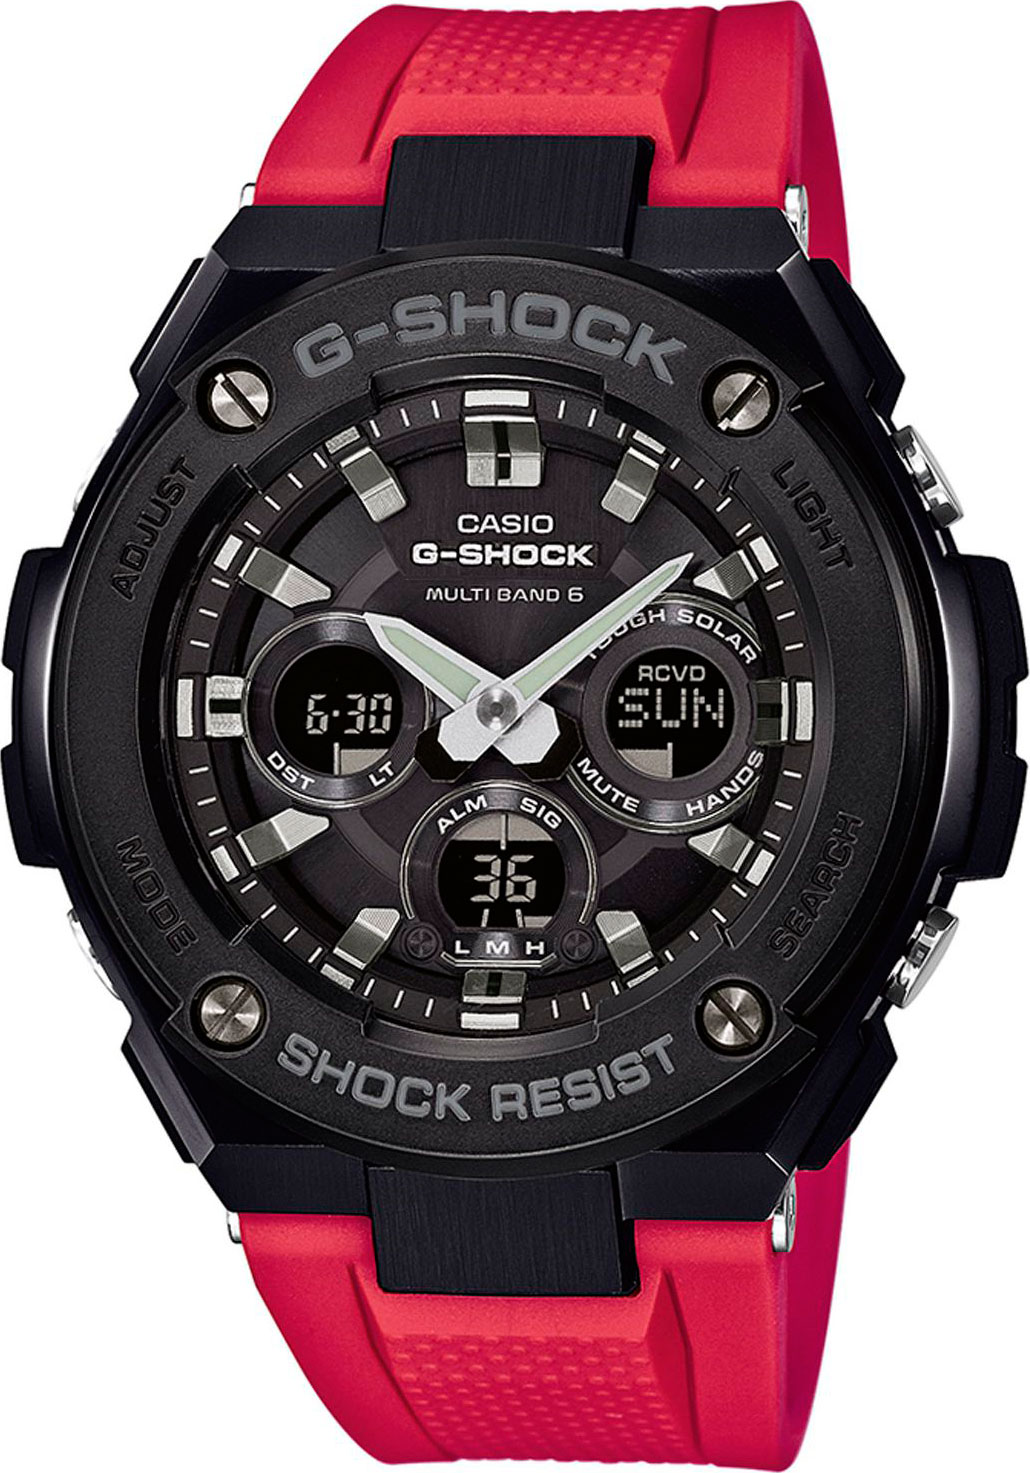 Casio G-shock G-Steel GST-W300G-1A4